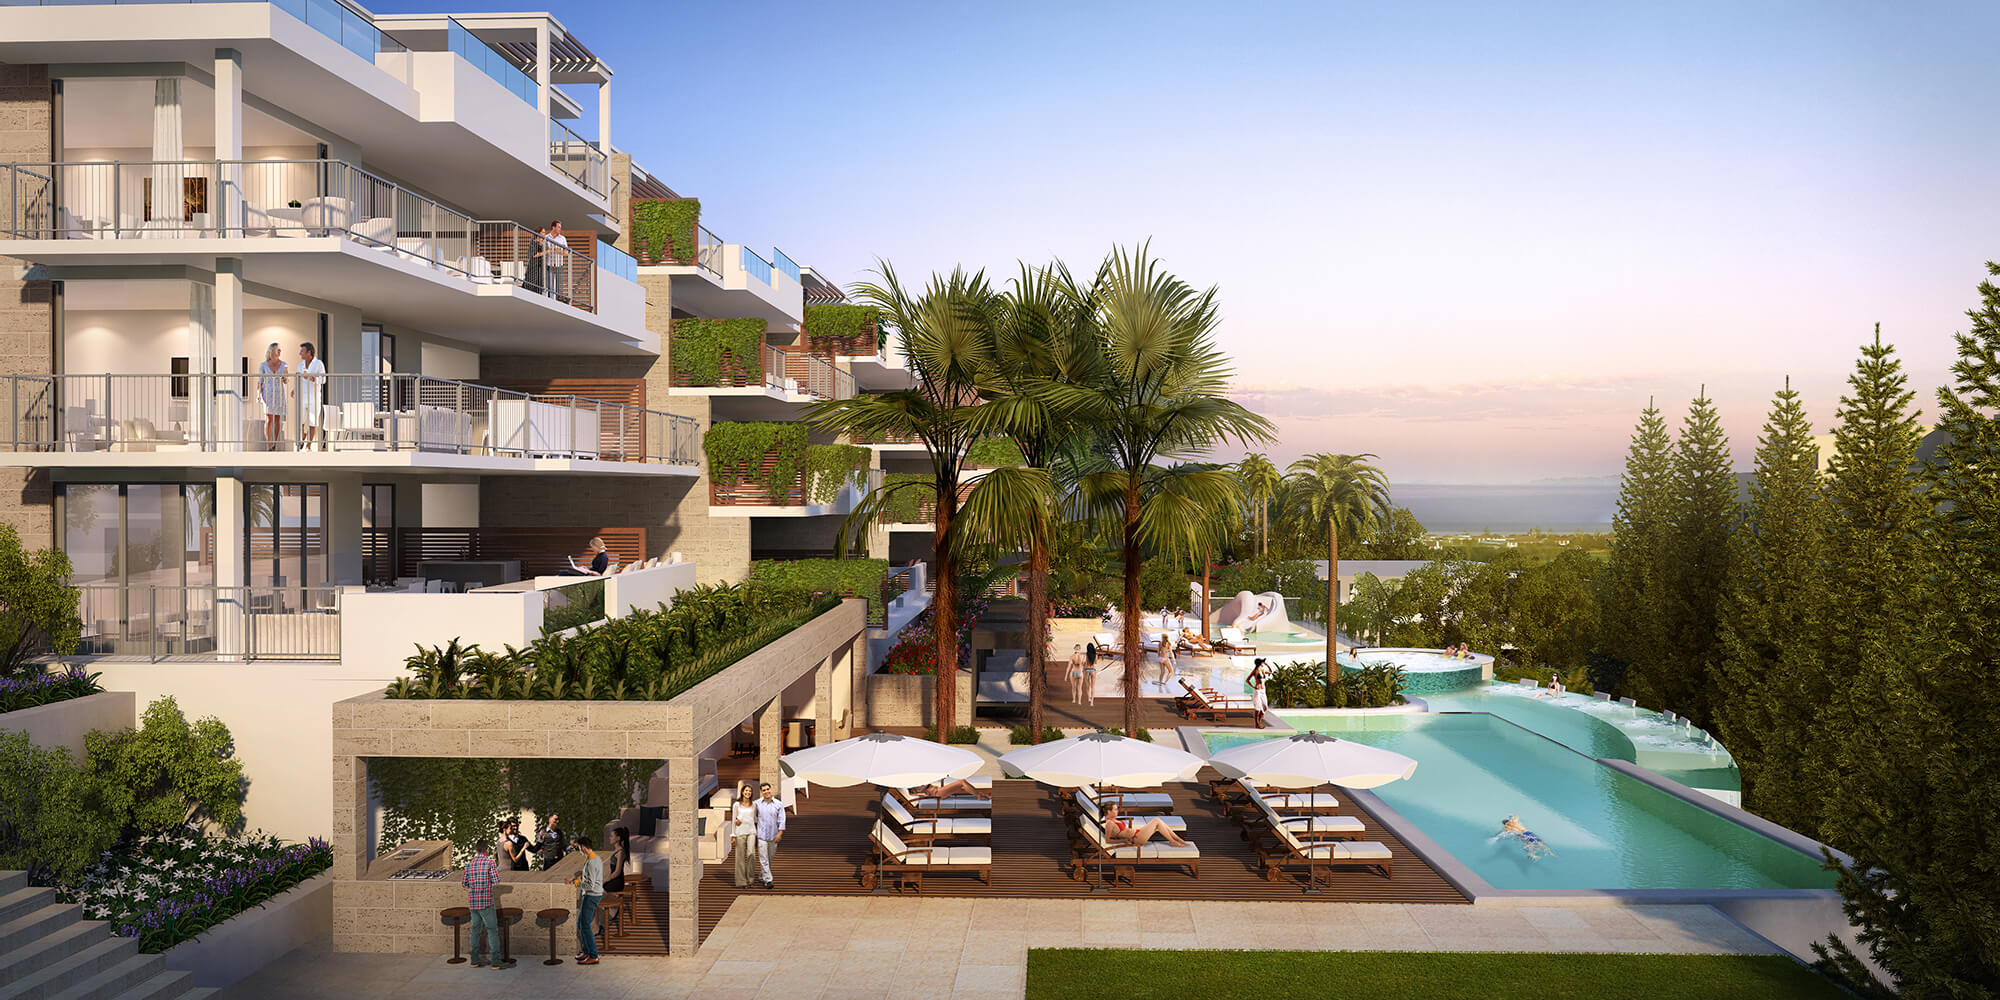 Apartments for sale in La Cala de Mijas MA1171692